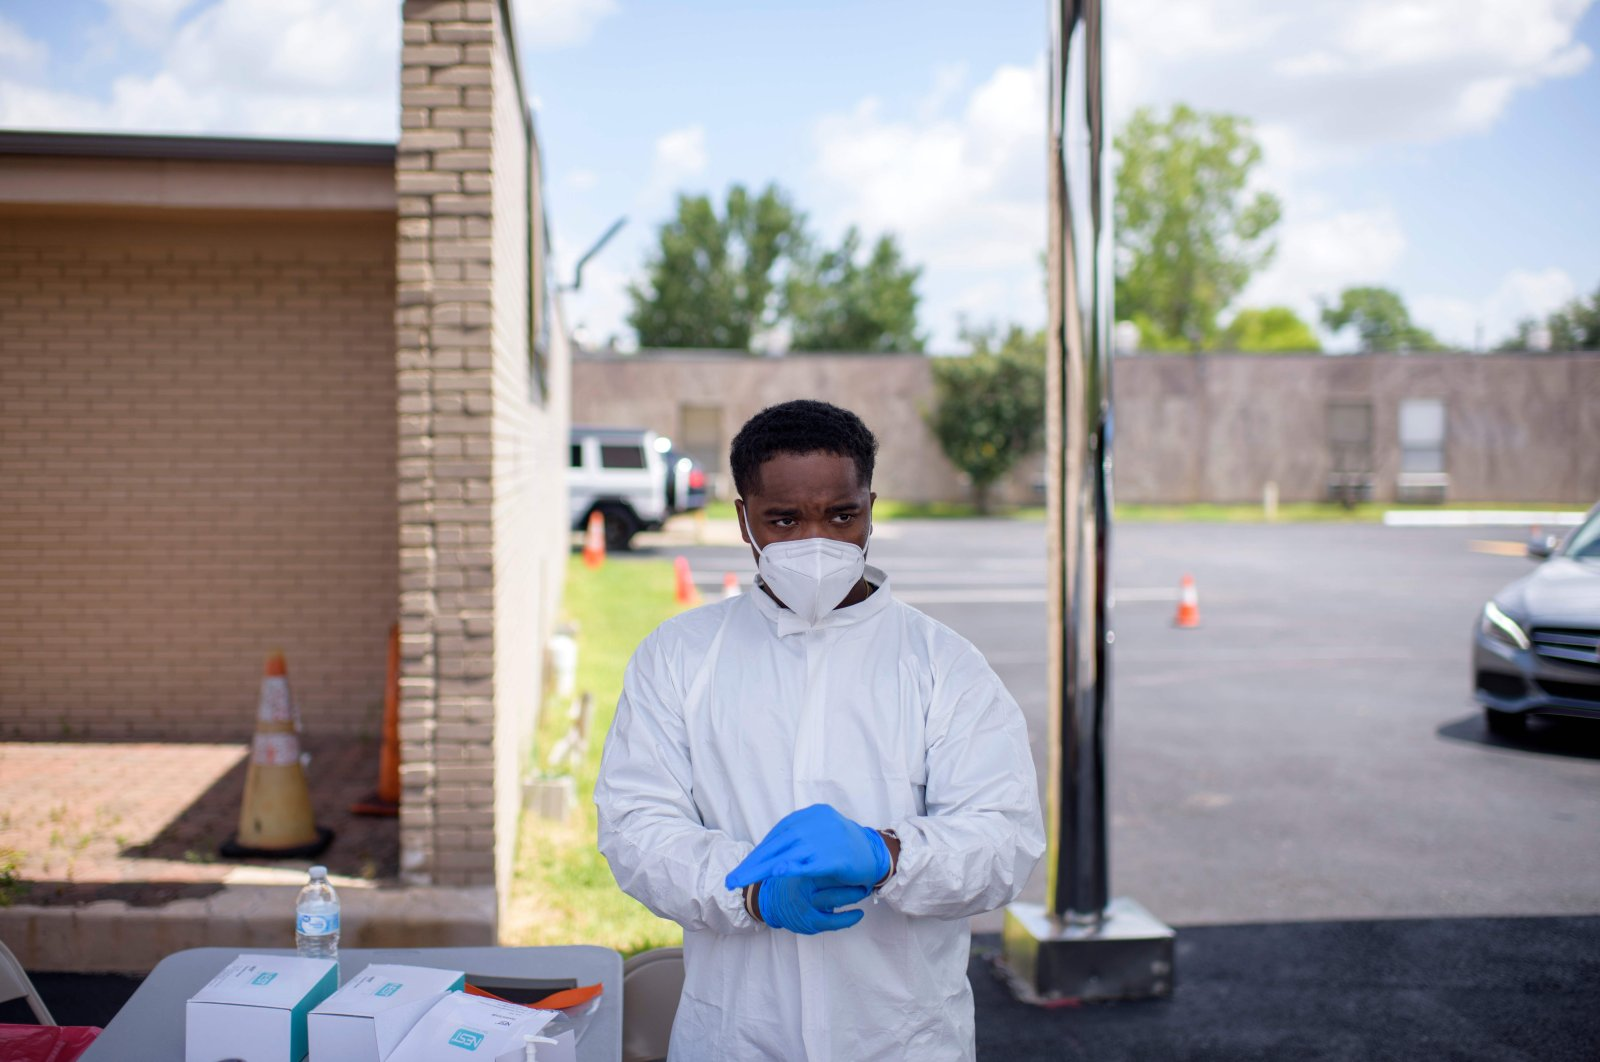 A healthcare worker puts on additional personal protective equipment at a COVID-19 testing site at United Memorial Medical Center in Houston, Texas, on July 9, 2020. (AFP Photo)